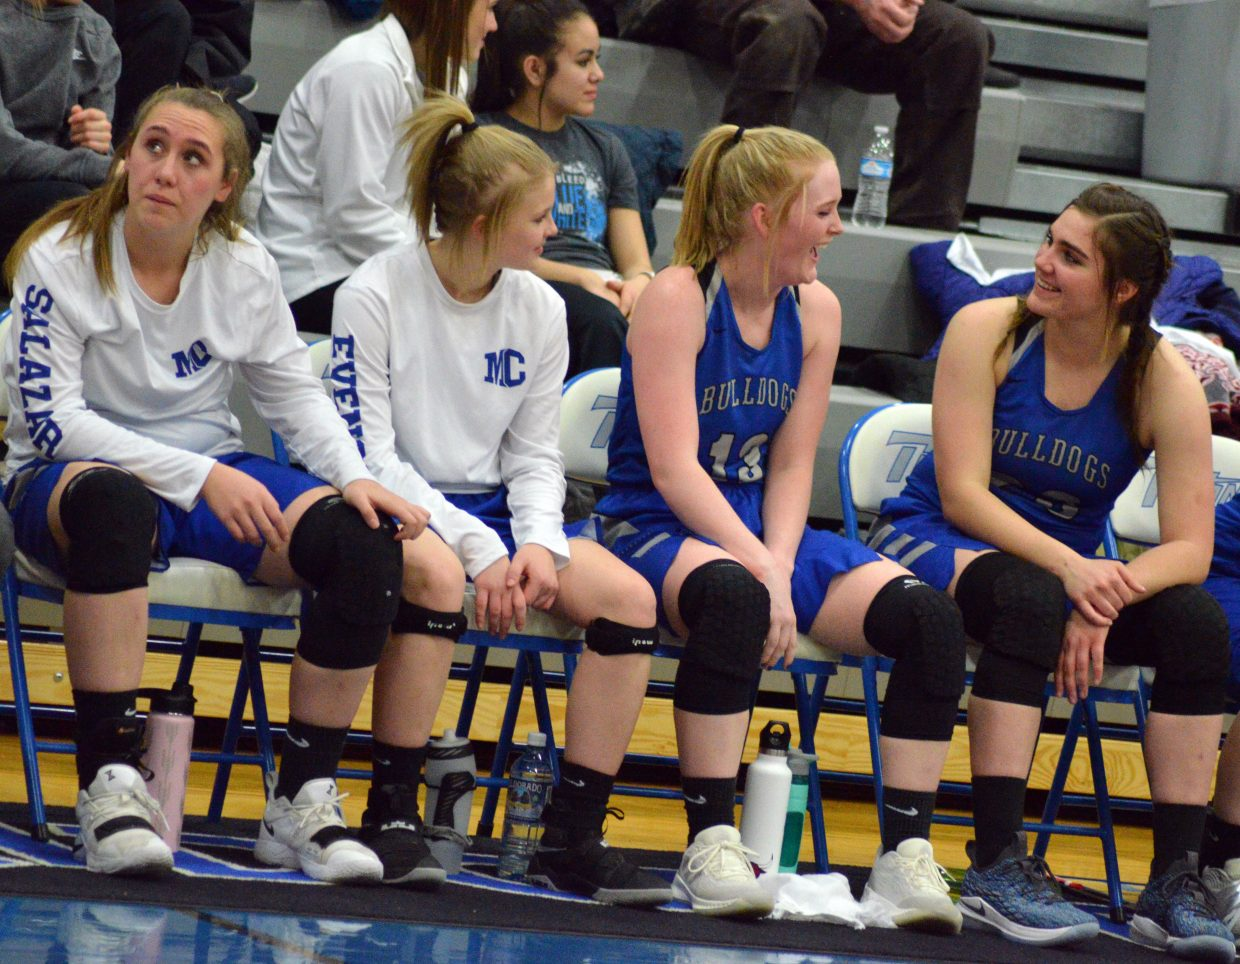 From left, Moffat County High School's Amber Salazar, Jacie Evenson, Jaidyn Steele and Jenna Timmer stay relaxed late in the game against Coal Ridge.